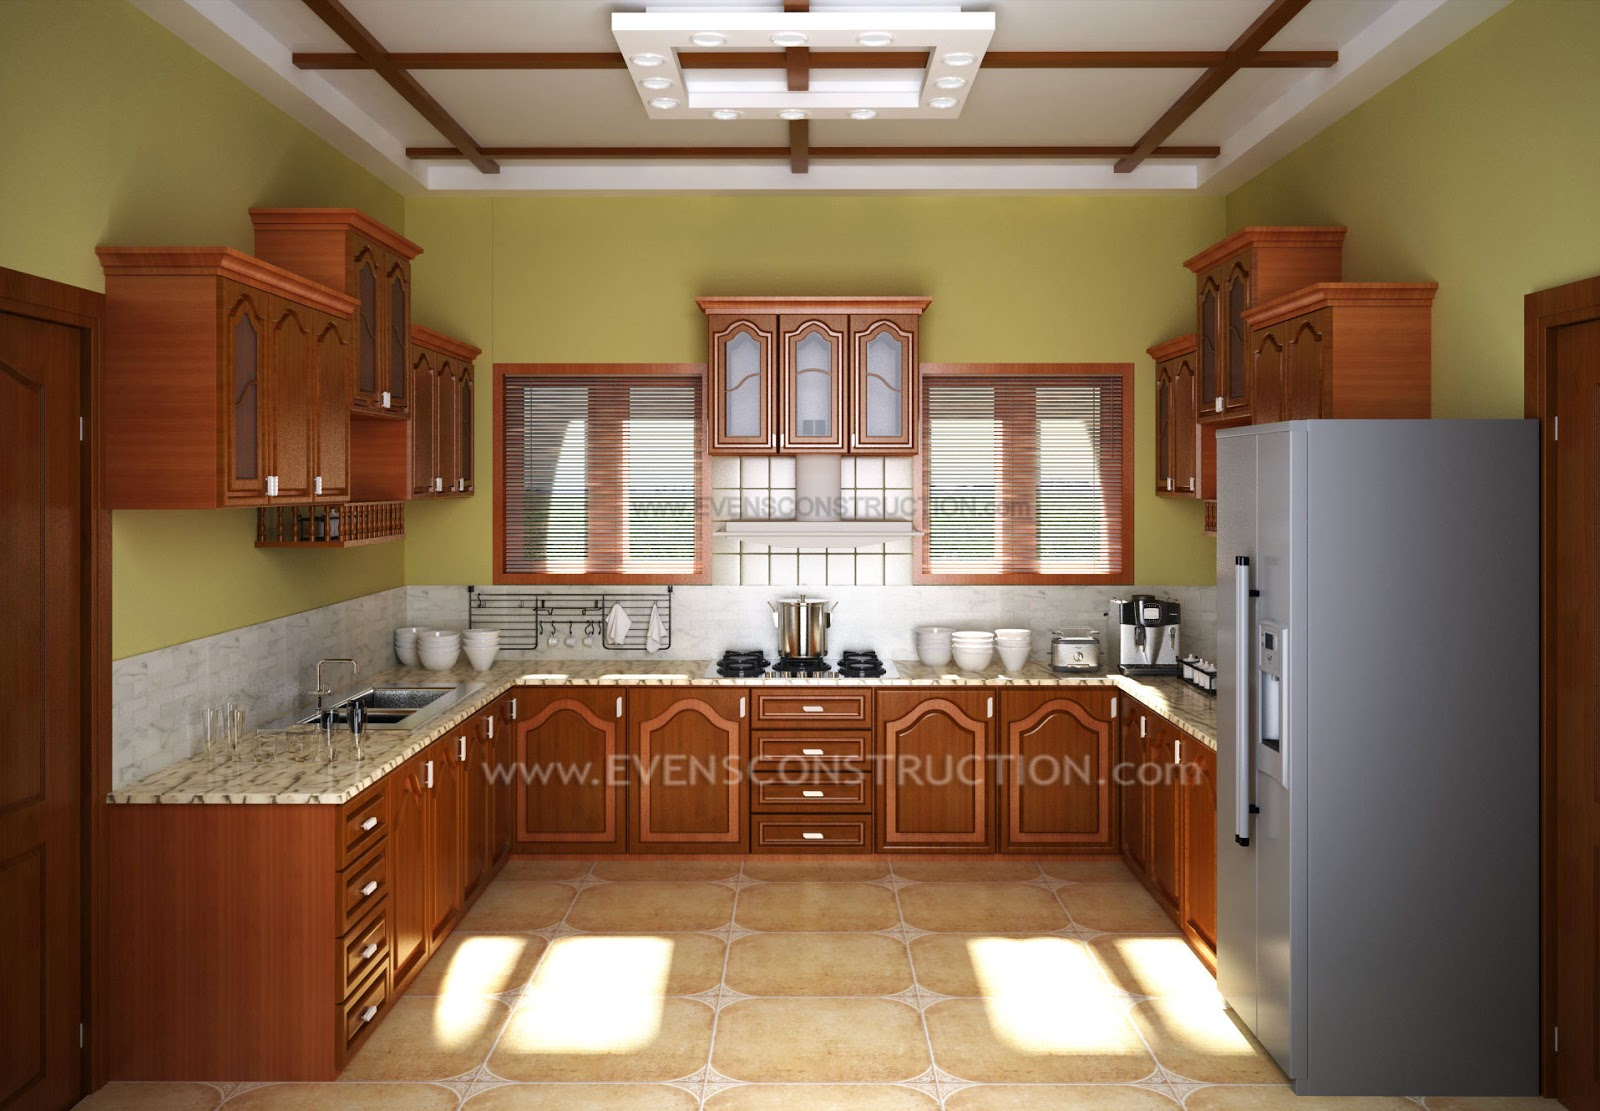 Evens construction pvt ltd kerala kitchen with wooden for Interior design for kitchen in kerala